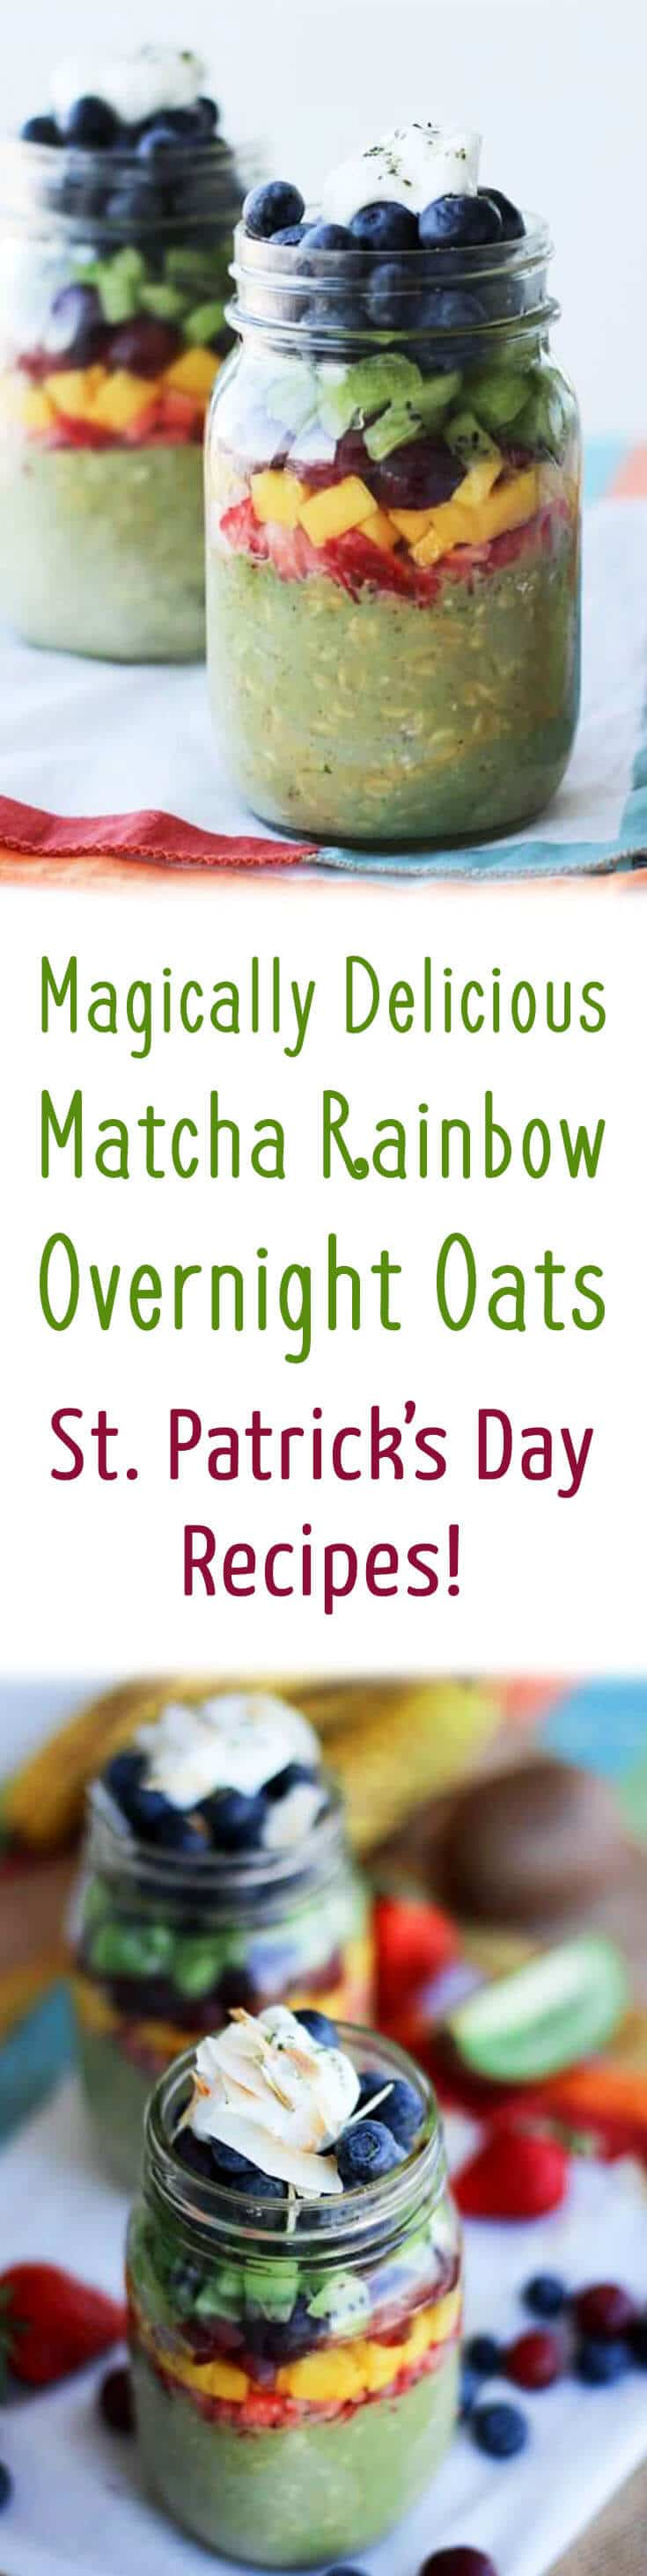 A healthy overnight oats recipe for St. Patrick's Day breakfast with matcha green tea and a rainbow of low calorie healthy fruits.